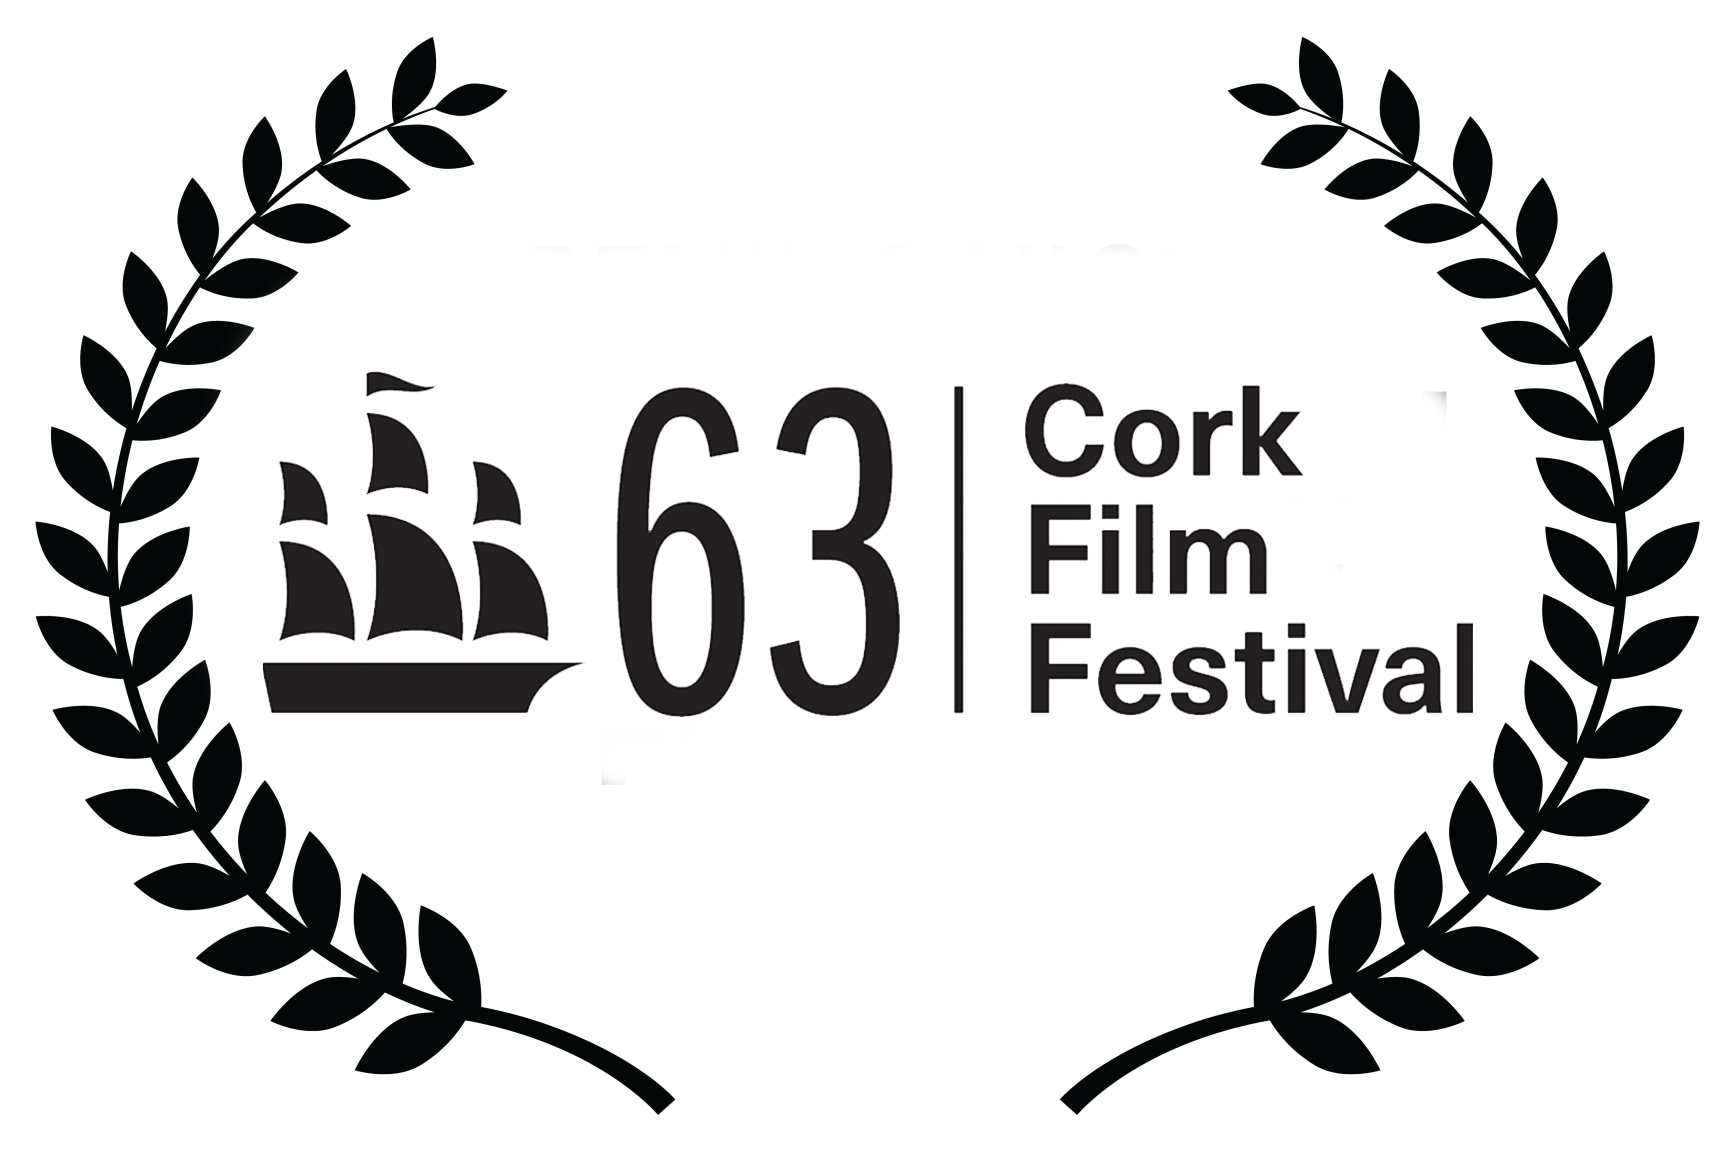 Cork Film Festival - November 13, 2018 // Cork, Ireland, UK // Tickets & Info